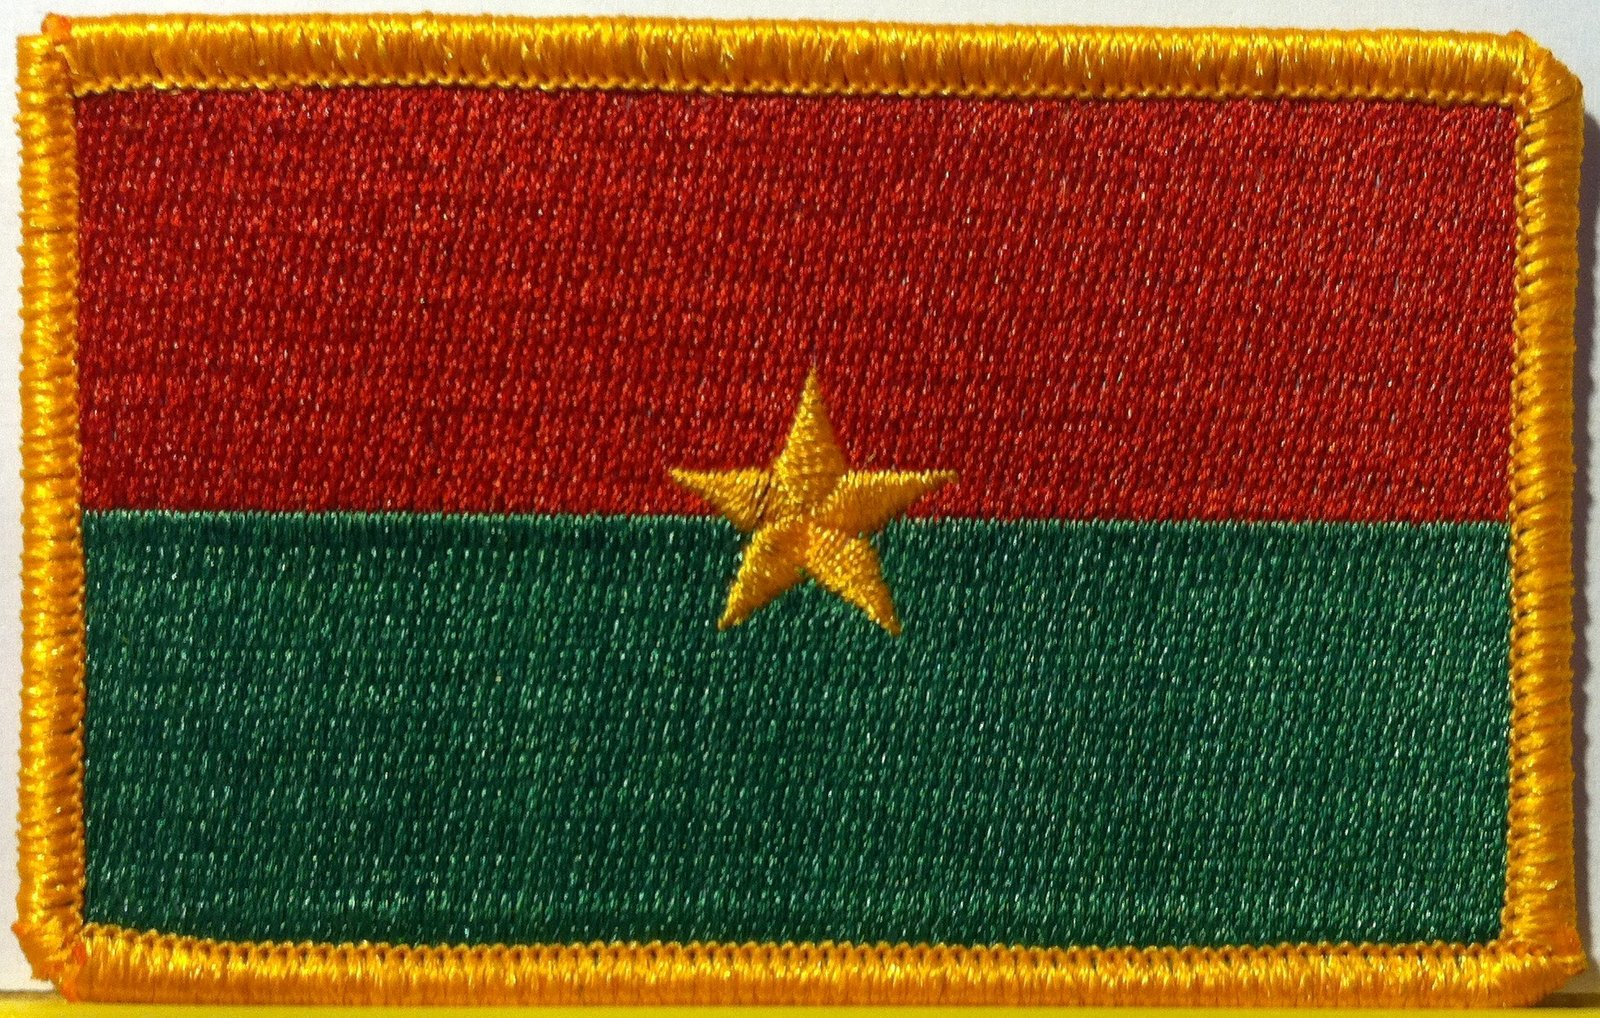 Primary image for Burkina Faso Embroidery Iron-on Patch Emblem Gold Border